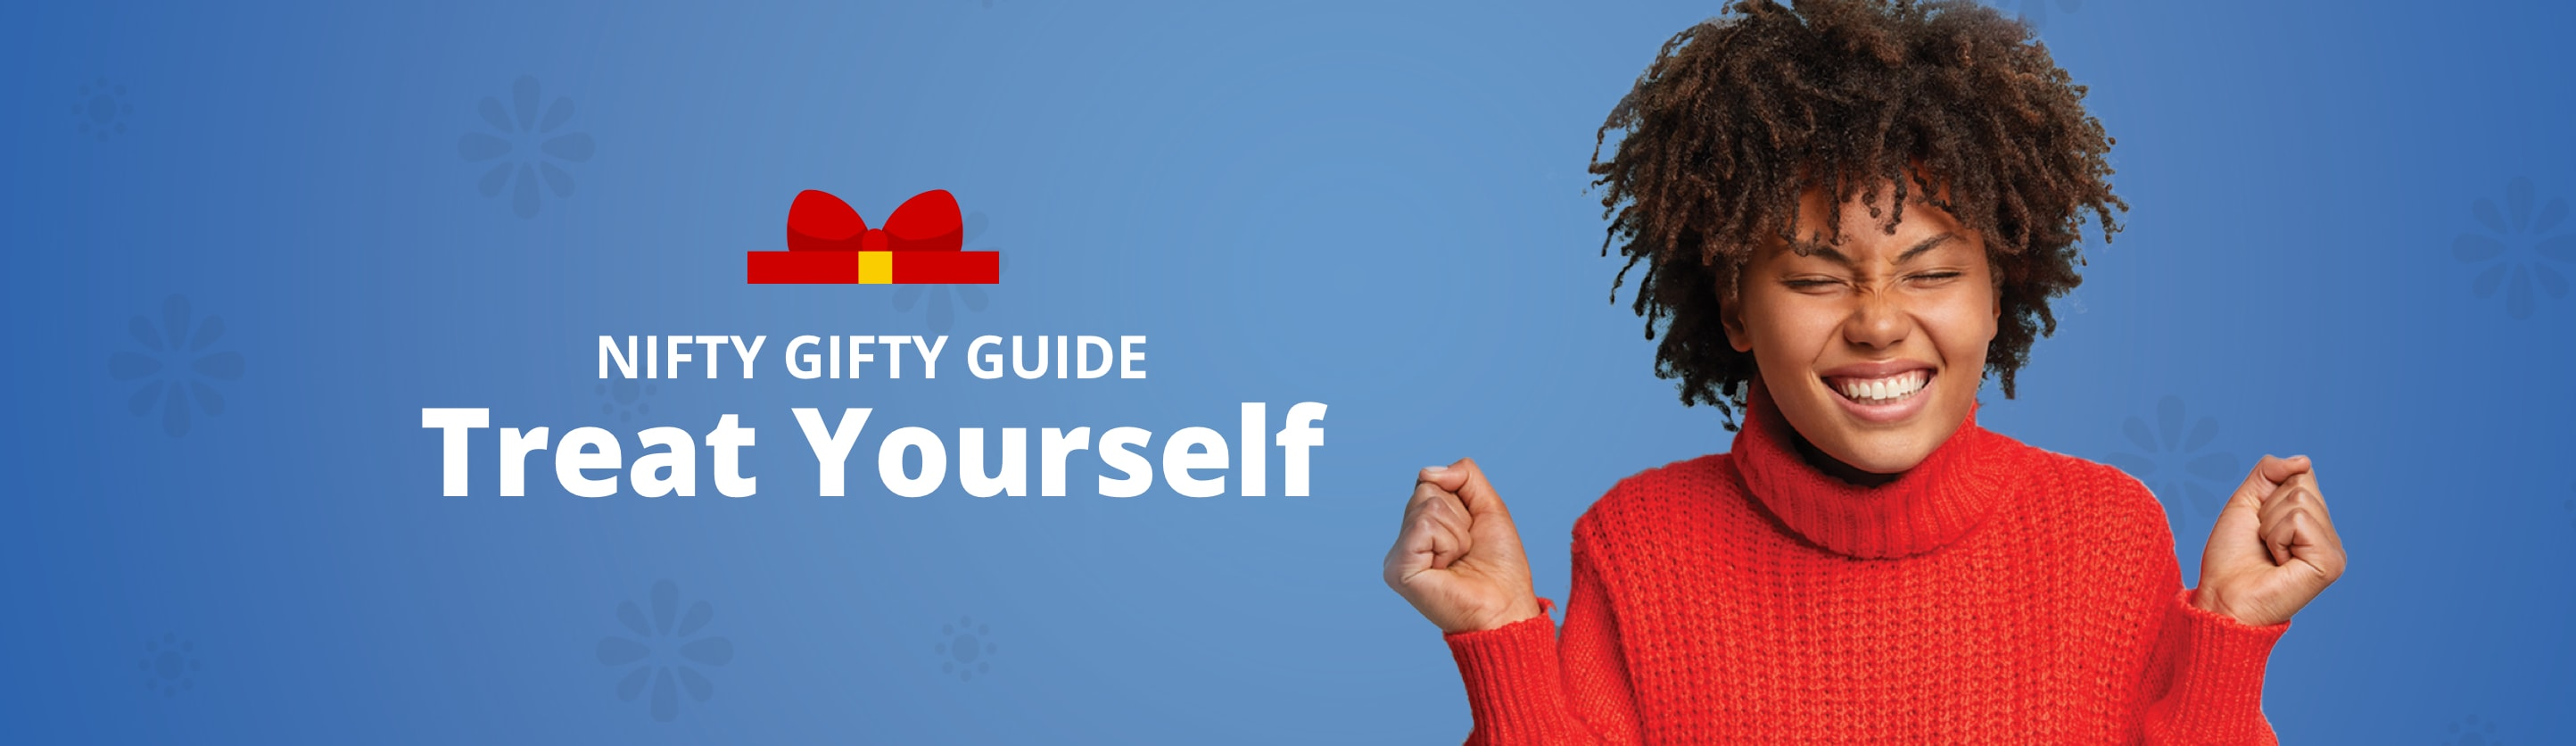 Nifty Gifty Guide - Treat Yourself